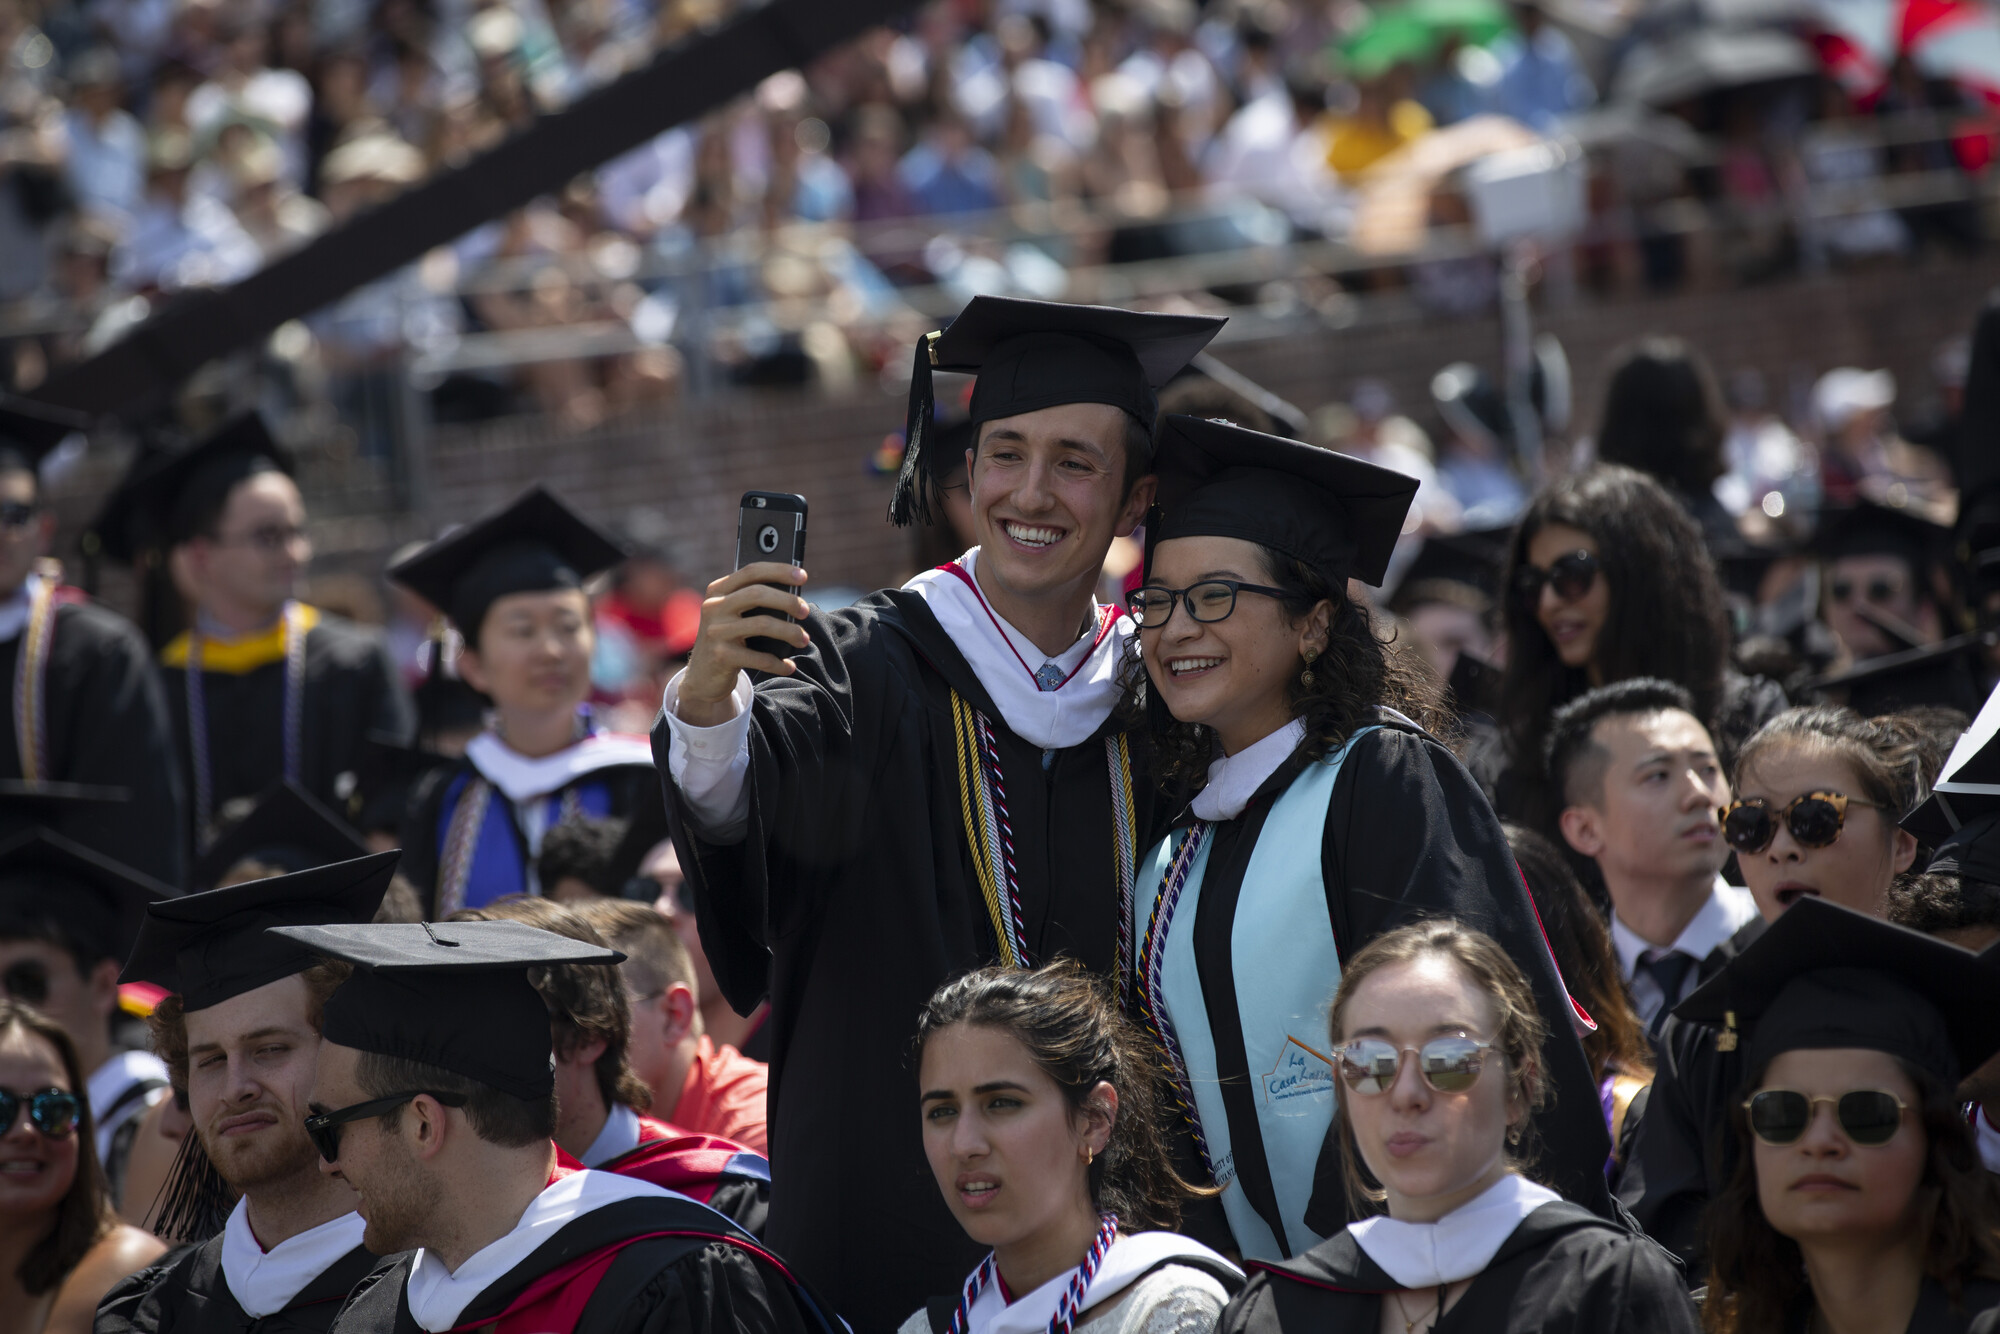 Two graduating students stand and take a selfie on the field during commencement